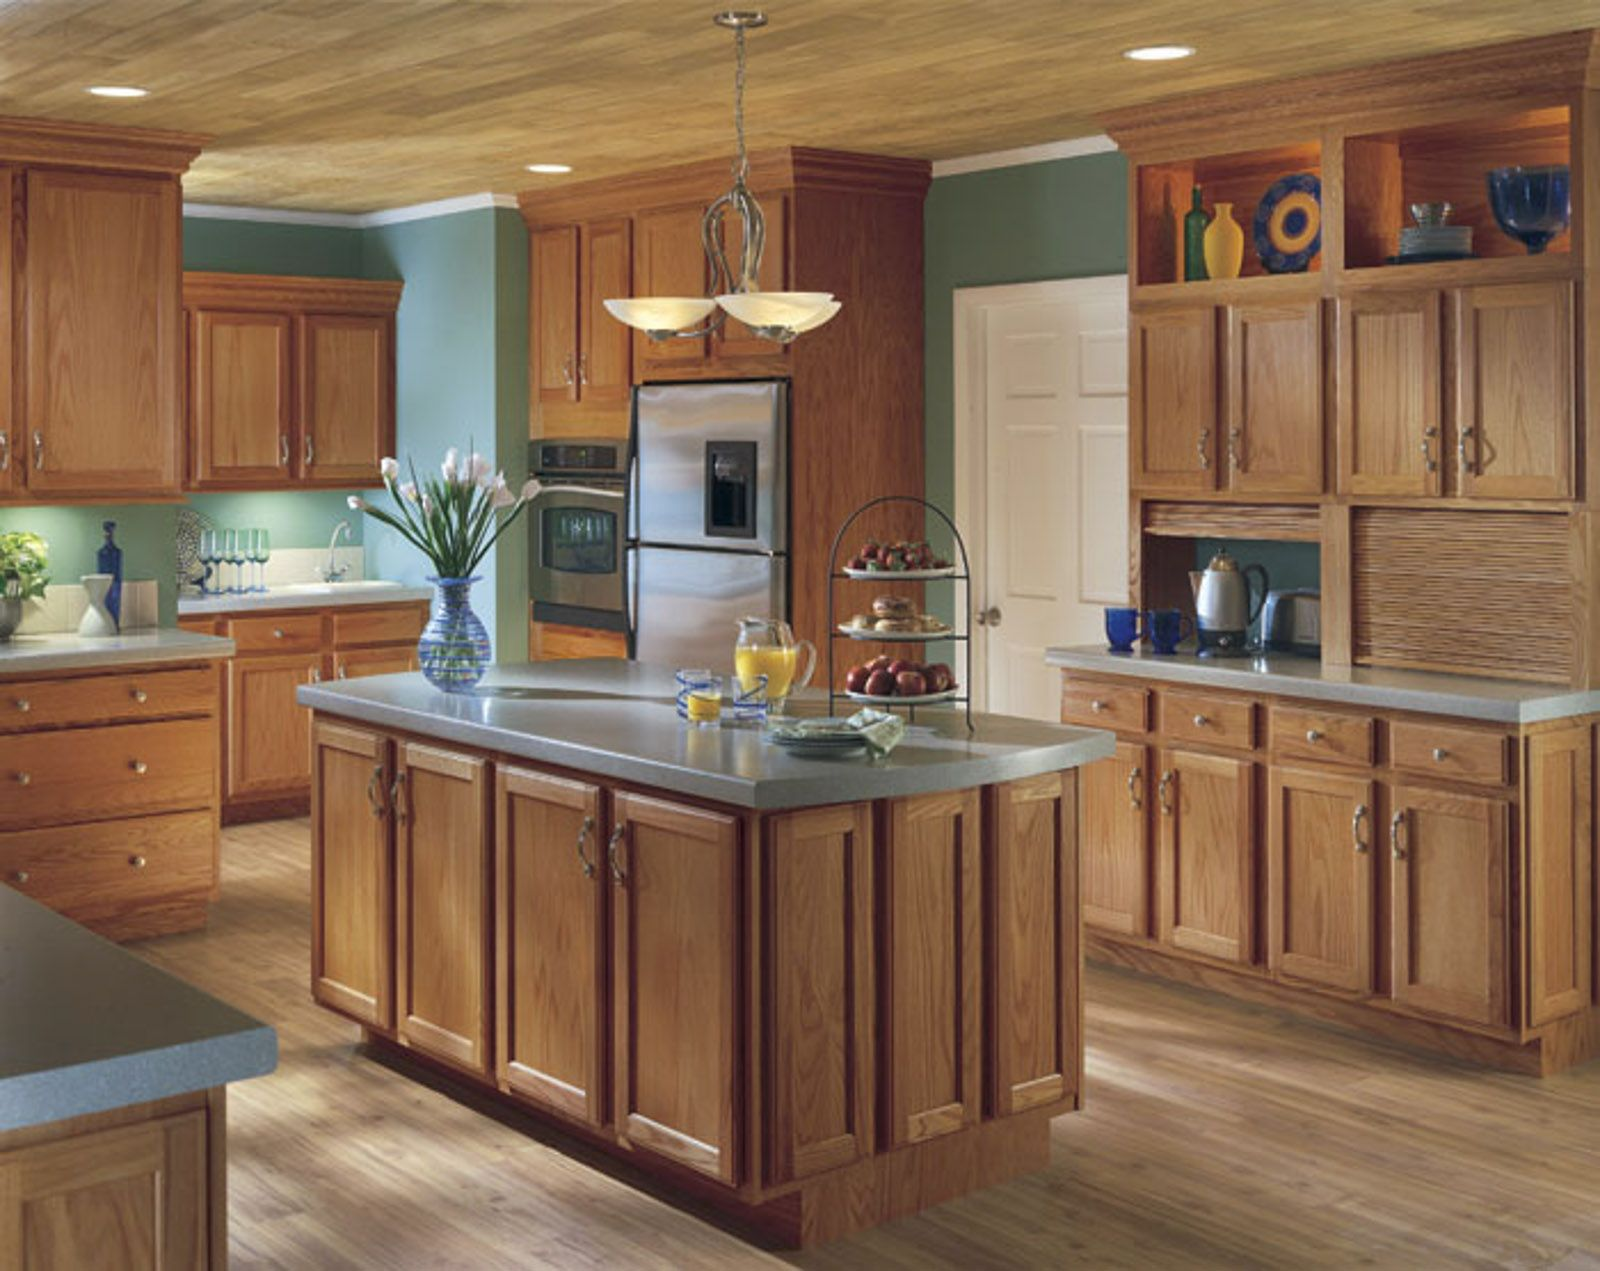 Benton Style Cabinets From Echelon Are Gorgeous In This Chestnut Finish Echelon Cabinets Kitchen D Oak Kitchen Cabinets Brown Kitchen Cabinets Oak Kitchen